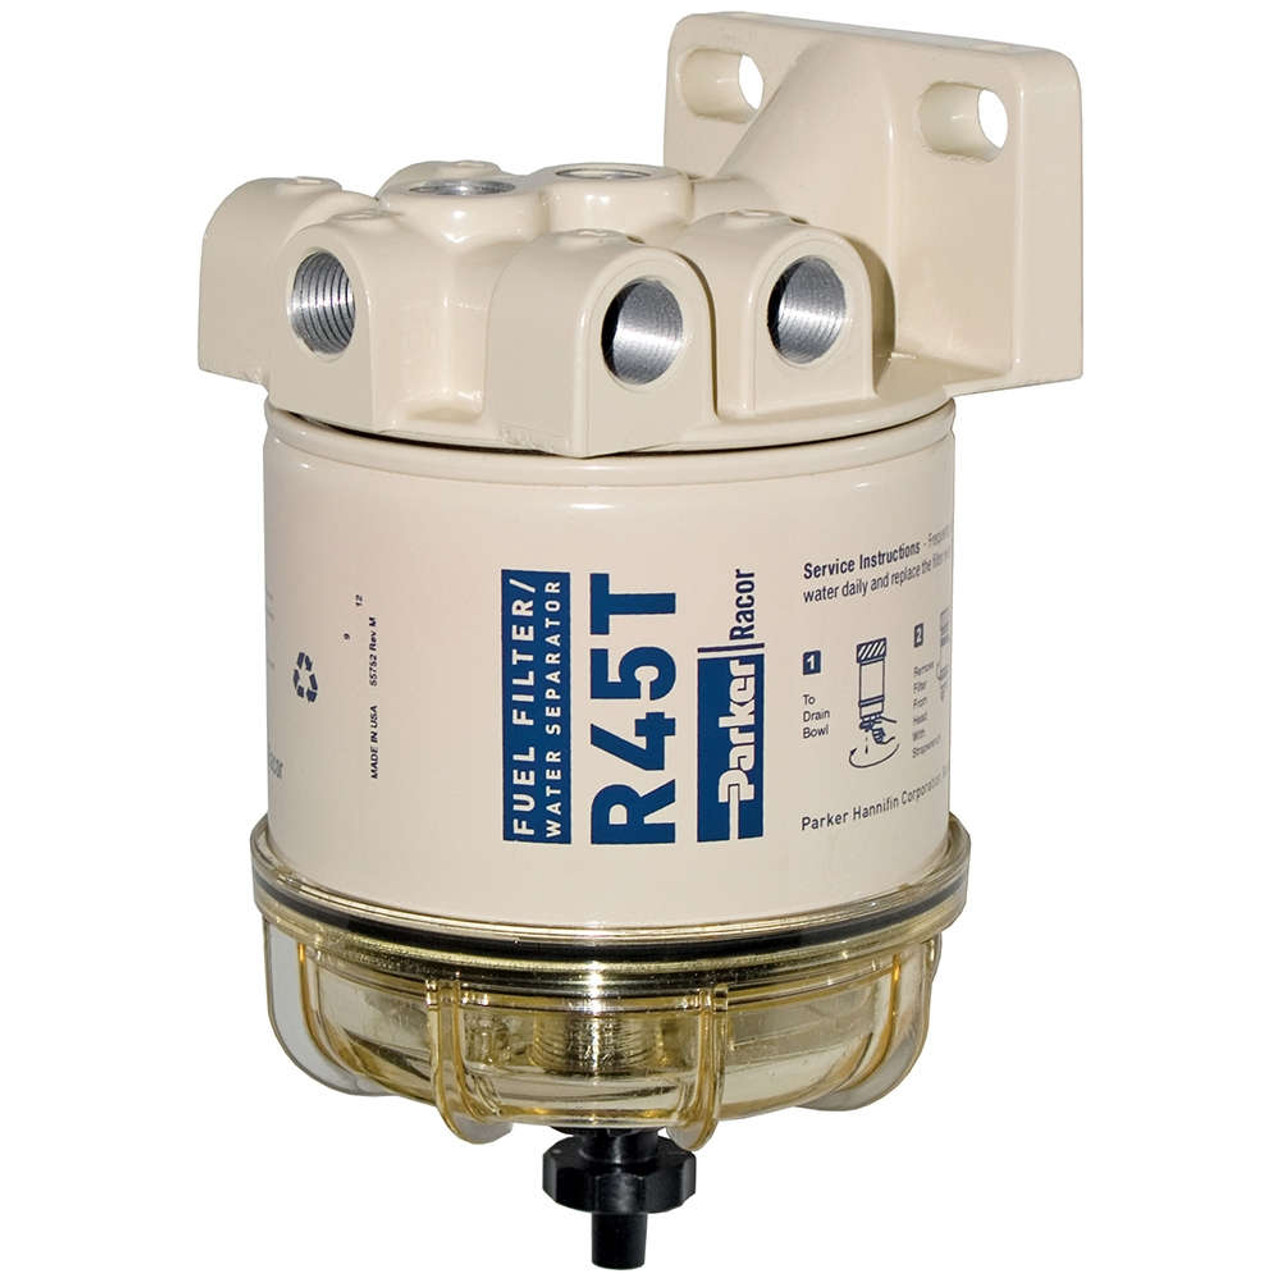 Racor 600 Series 45 GPH Diesel Spin-On Fuel Filters - 10 Micron - 6